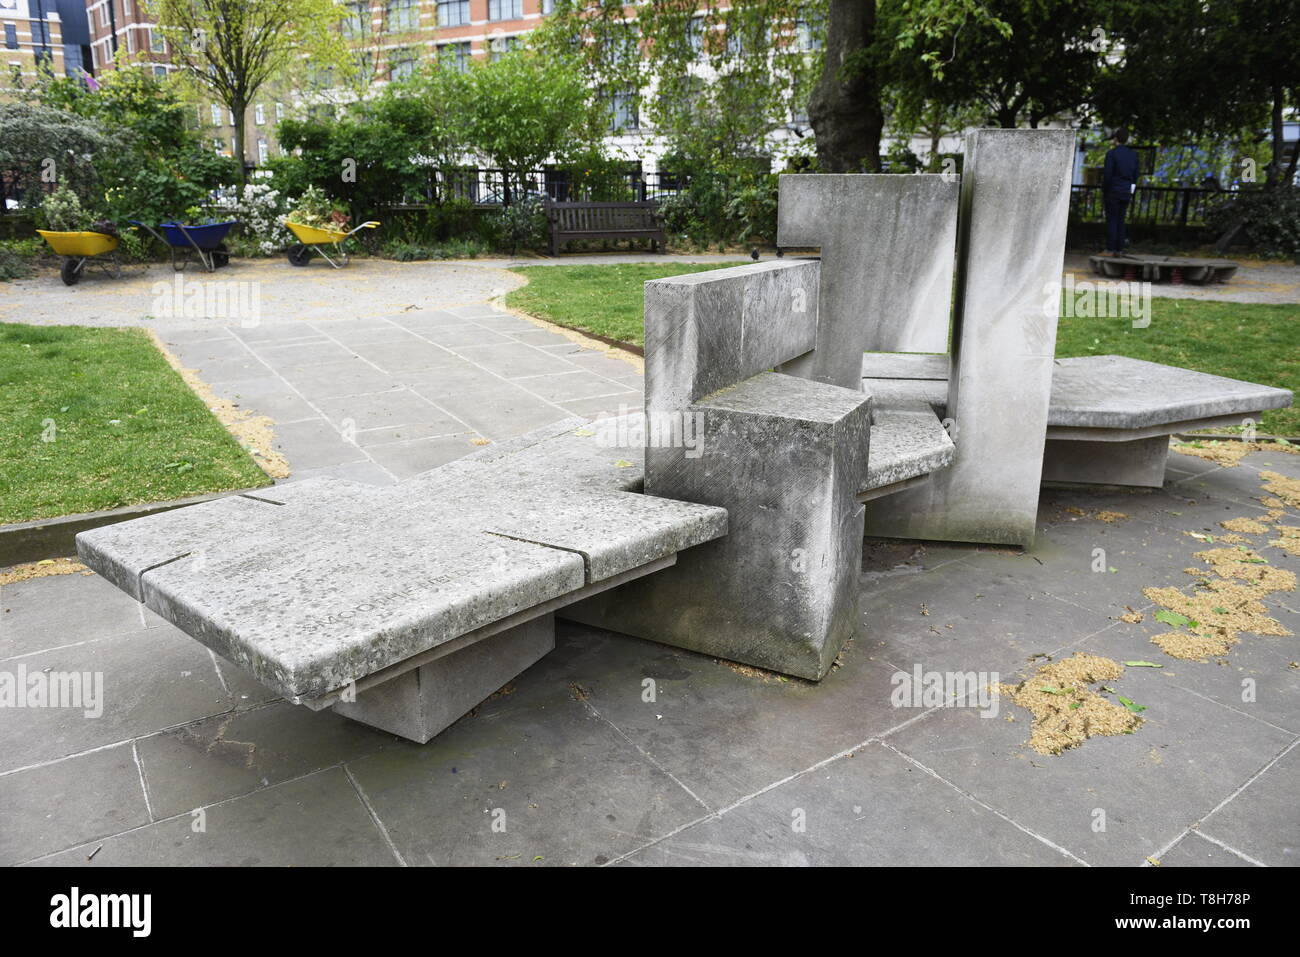 Sculptured stone bench 2006, designed by Sam Dawkins and Donna Walker. Located in Smithfield Rotunda Garden, West Smithfield, Farringdon, London EC1A  - Stock Image